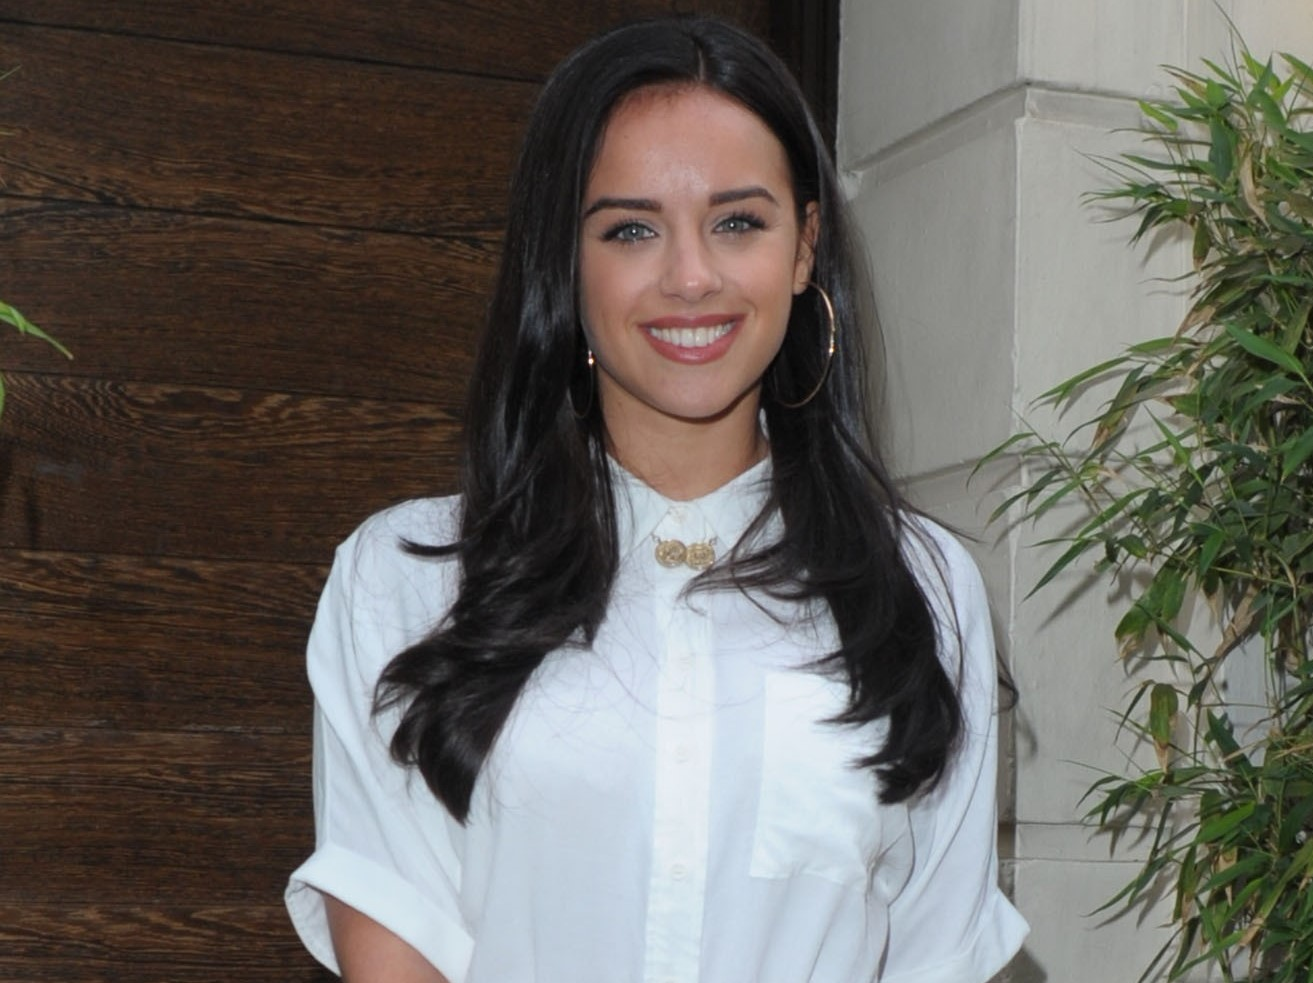 Strictly star Georgia May Foote emotionally opens up about mental health struggle